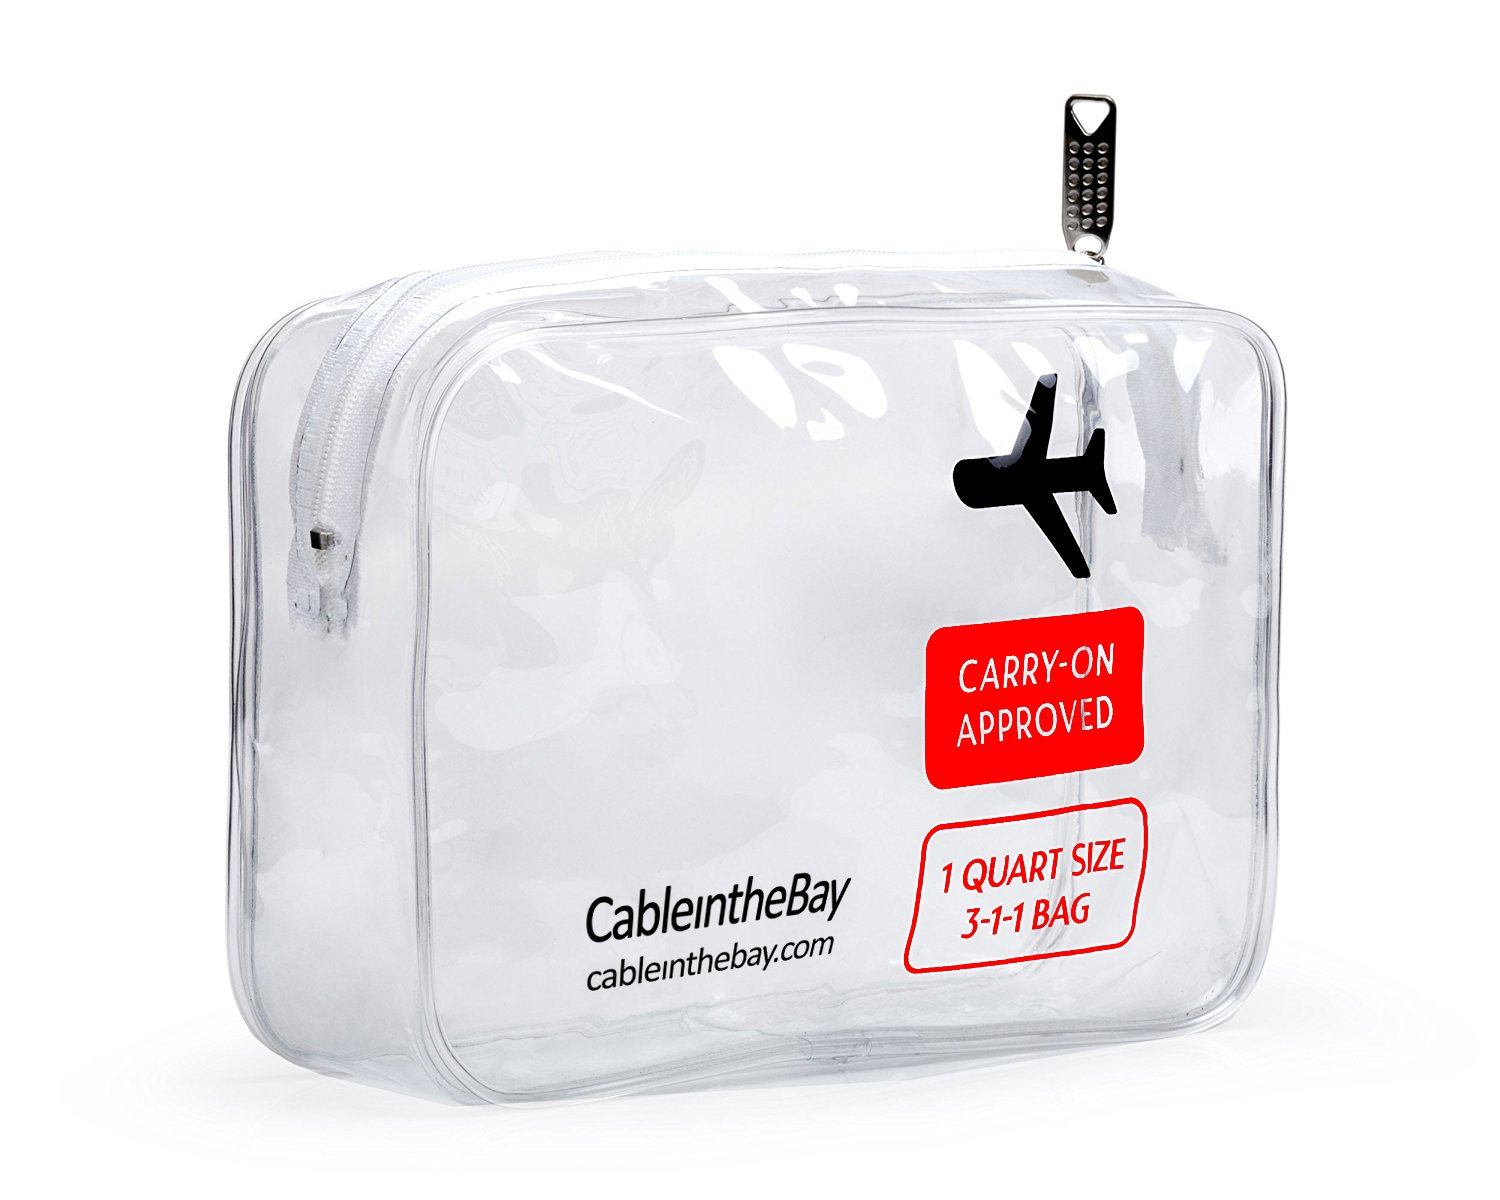 TSA Approved Toiletry Bag | Clear Travel Bag| Makeup Bag Travel Airport Airline Compliant Bag | Carry-On Luggage Travel Backpack for Liquids/Bottles| Men's/Women's 3-1-1 Kit +10 Travel Hacks EBOOK Cableinthebay